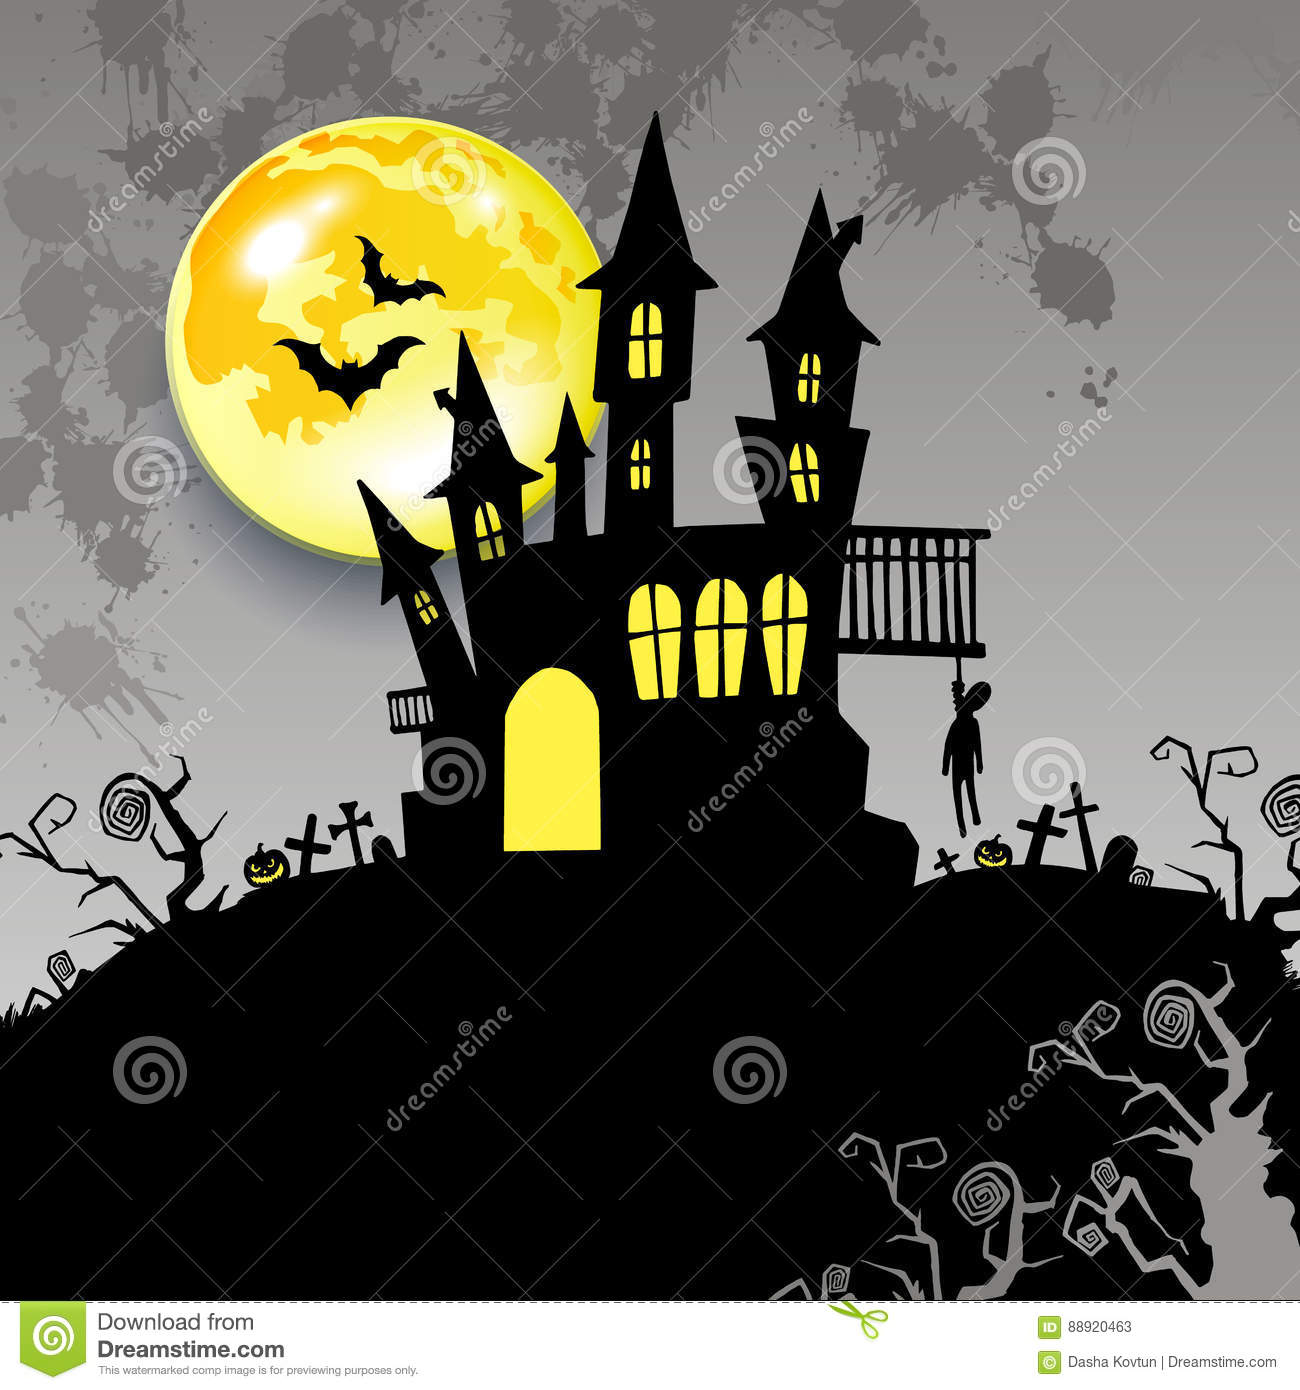 Castello Halloween.Moon Halloween Castle Illustration Horror Night Silhouette Stock